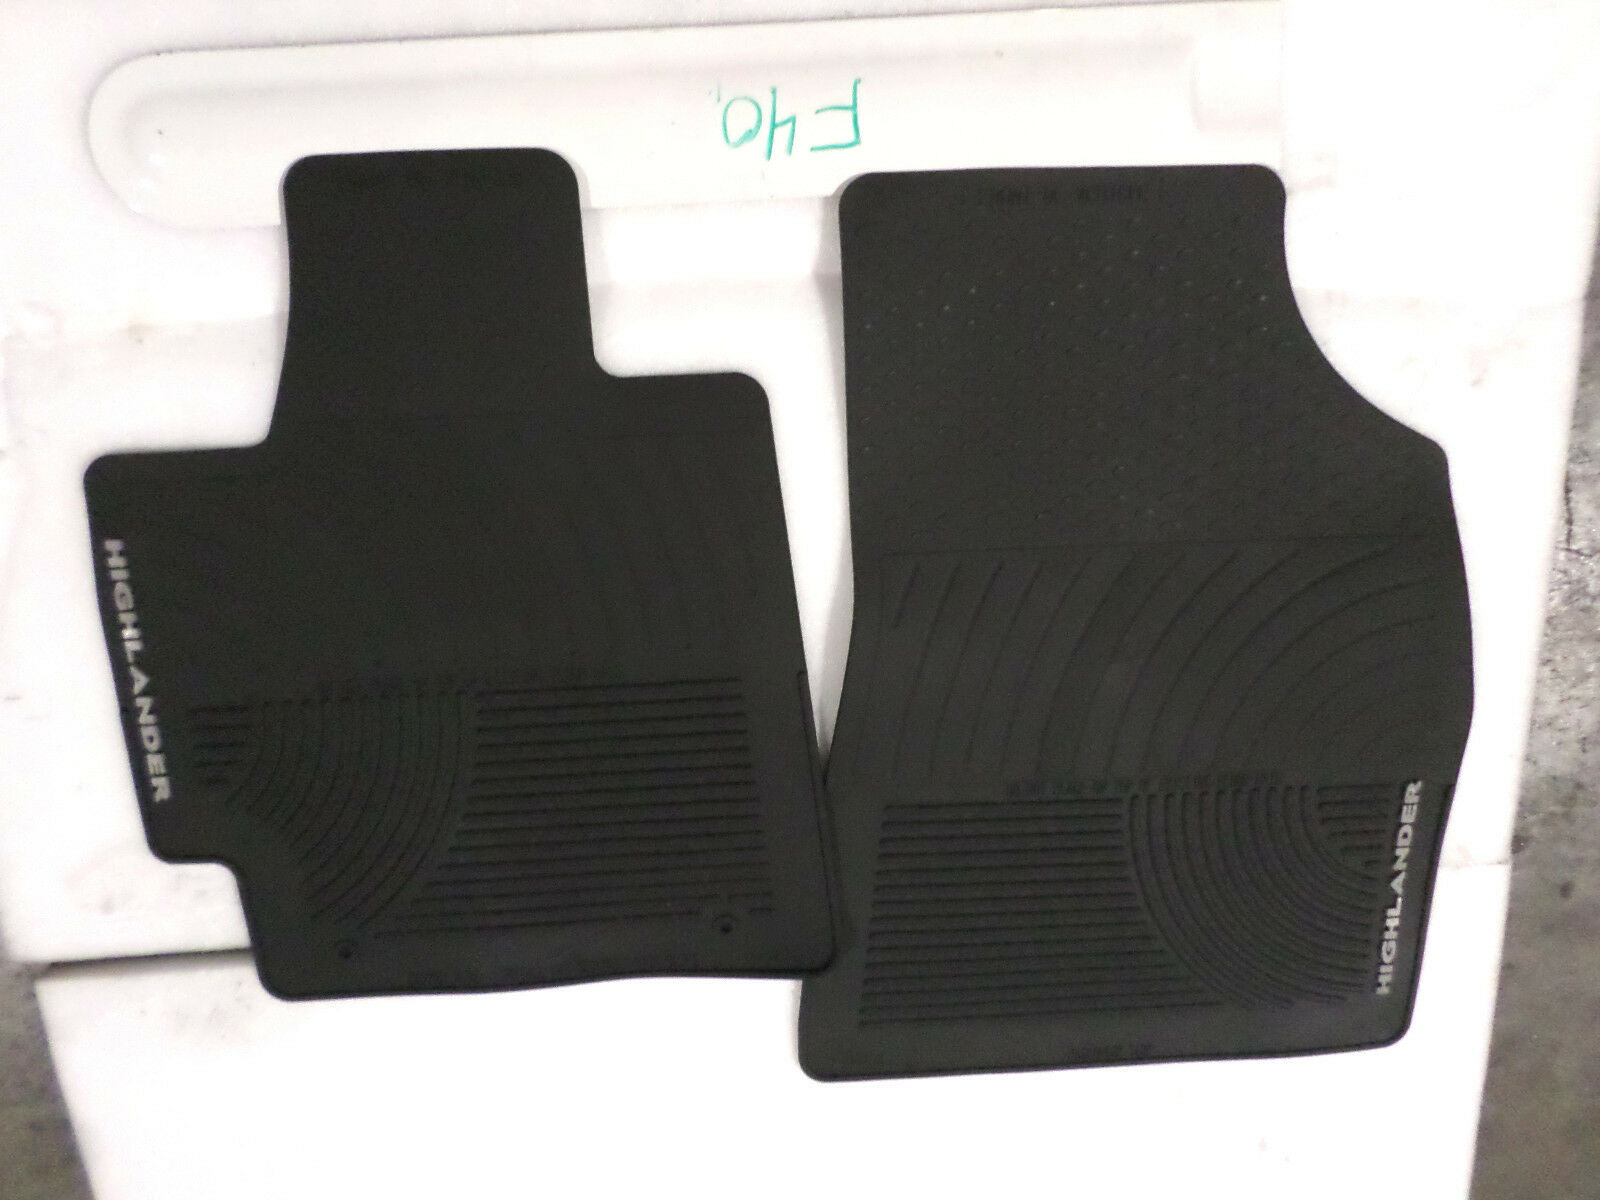 Weathertech mats for 2013 toyota highlander - Nice Oem All Weather Floor Mats Pair Toyota Highlander Black 2008 2013 Fronts